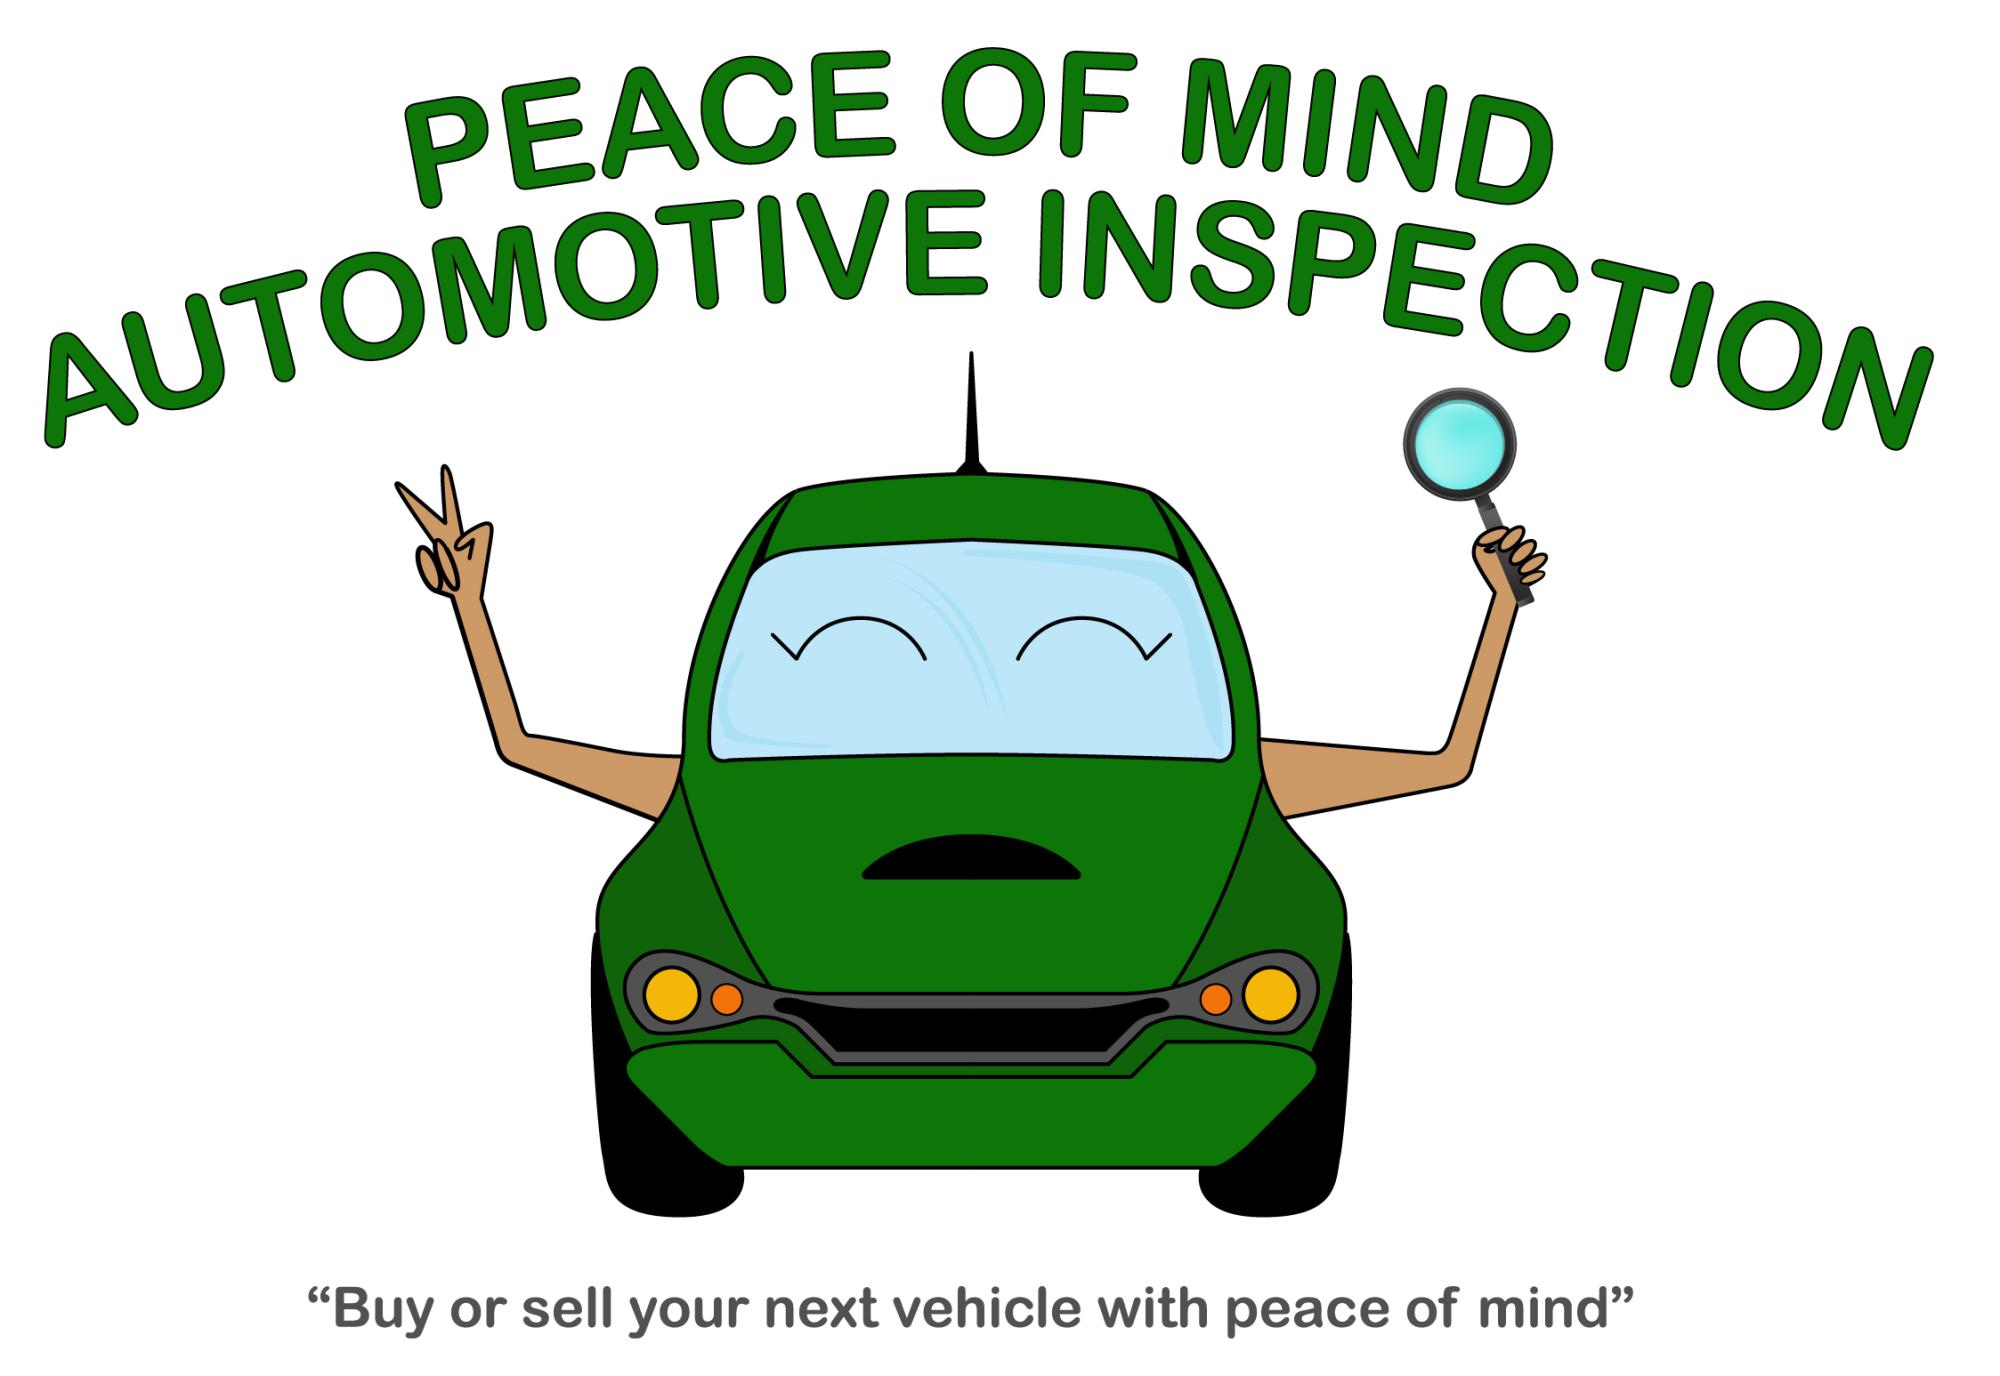 Peace of Mind Automotive Inspection - Pre Purchase Vehicle Inspection - Mobile service (Texas)